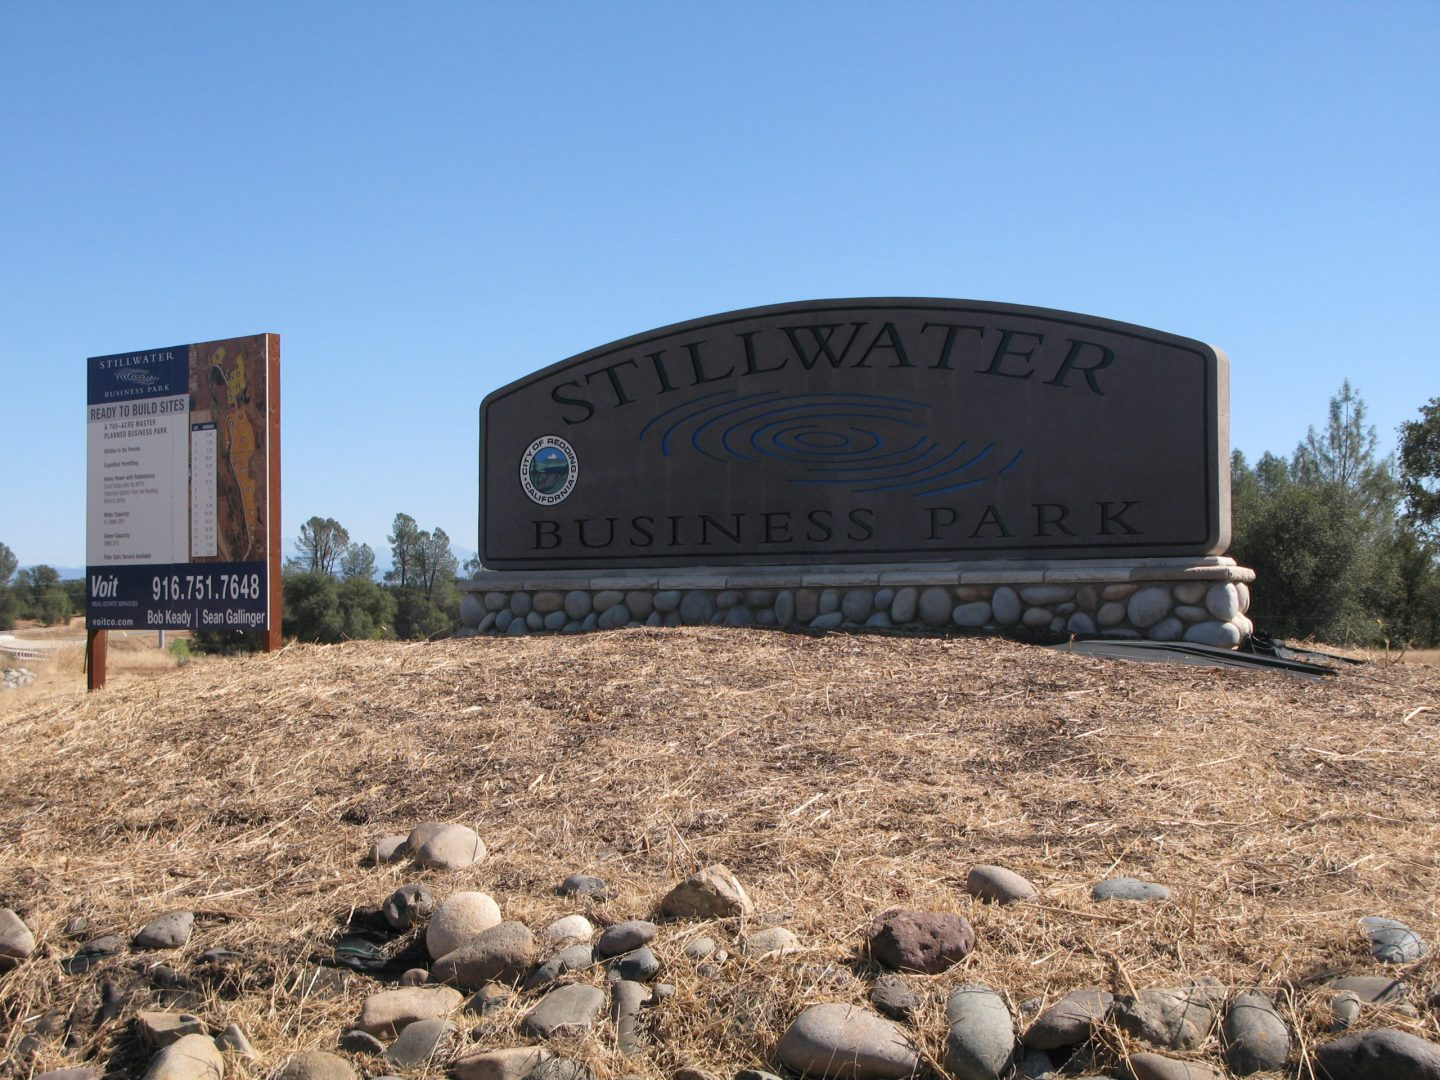 Industrial Projects - Stillwater Business Park